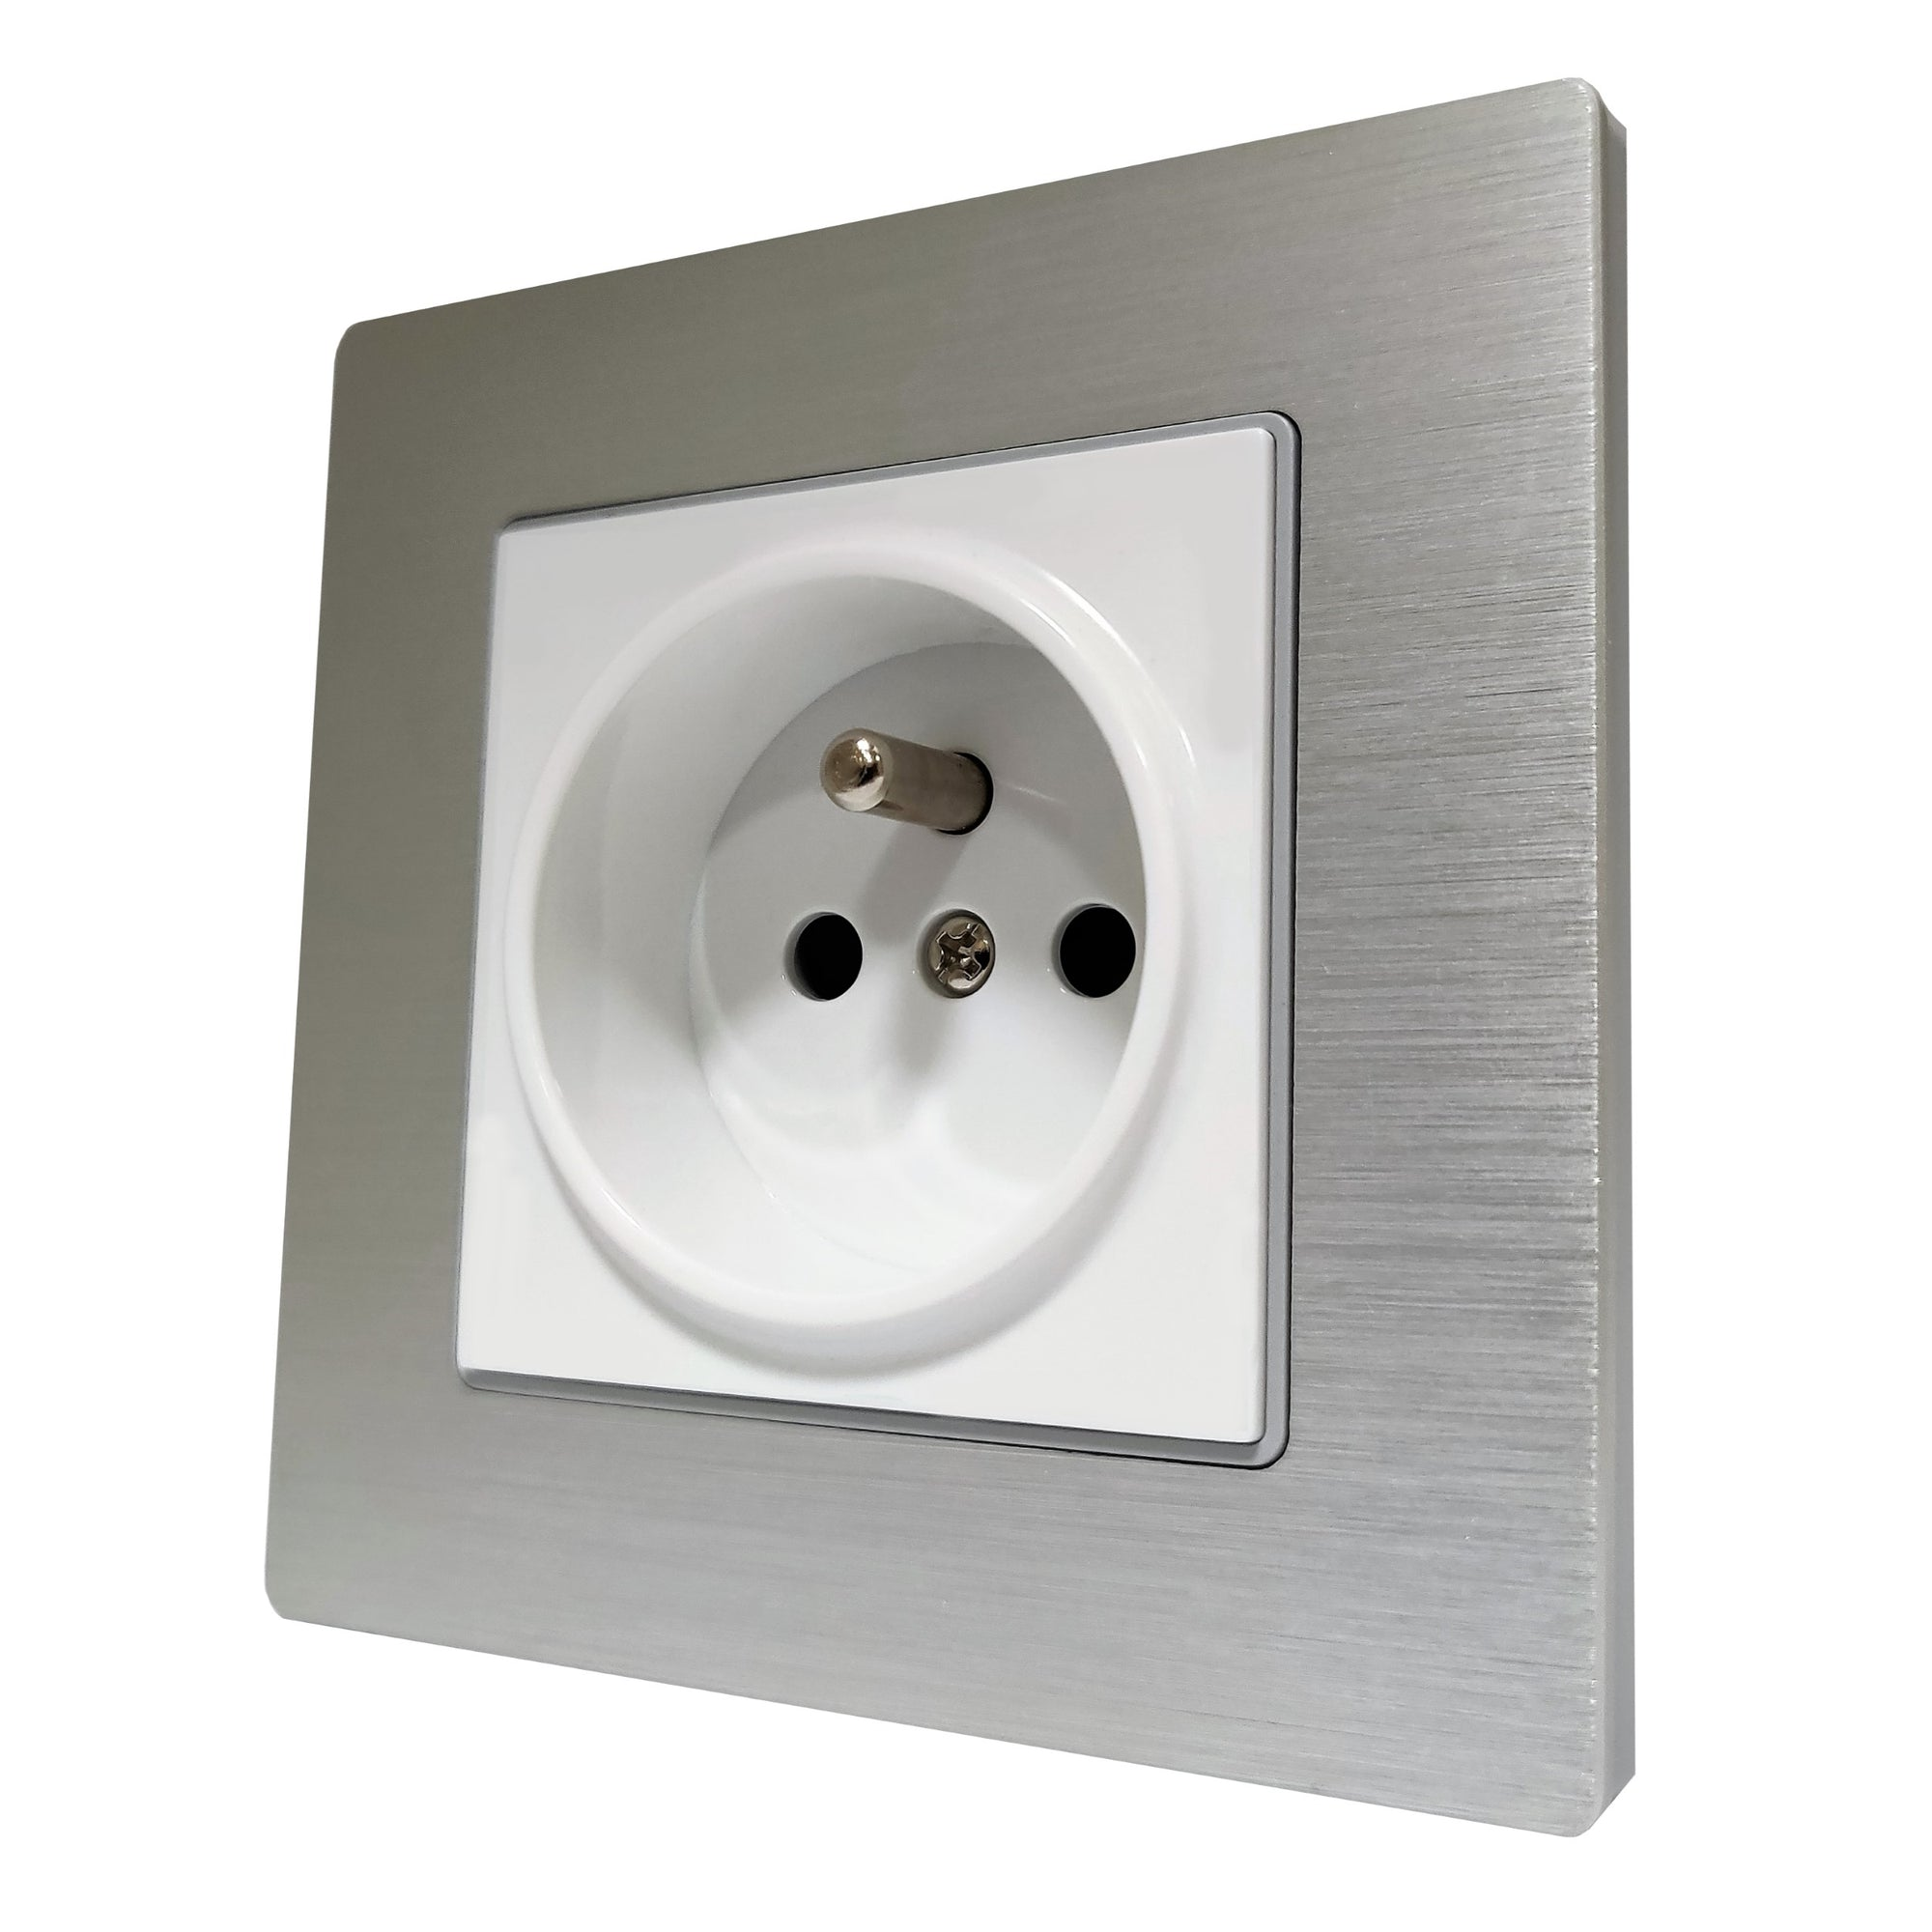 Single French EU 16A 2-Pin AC Wall Power Socket in Silver Brushed Alum Frame & White Centre